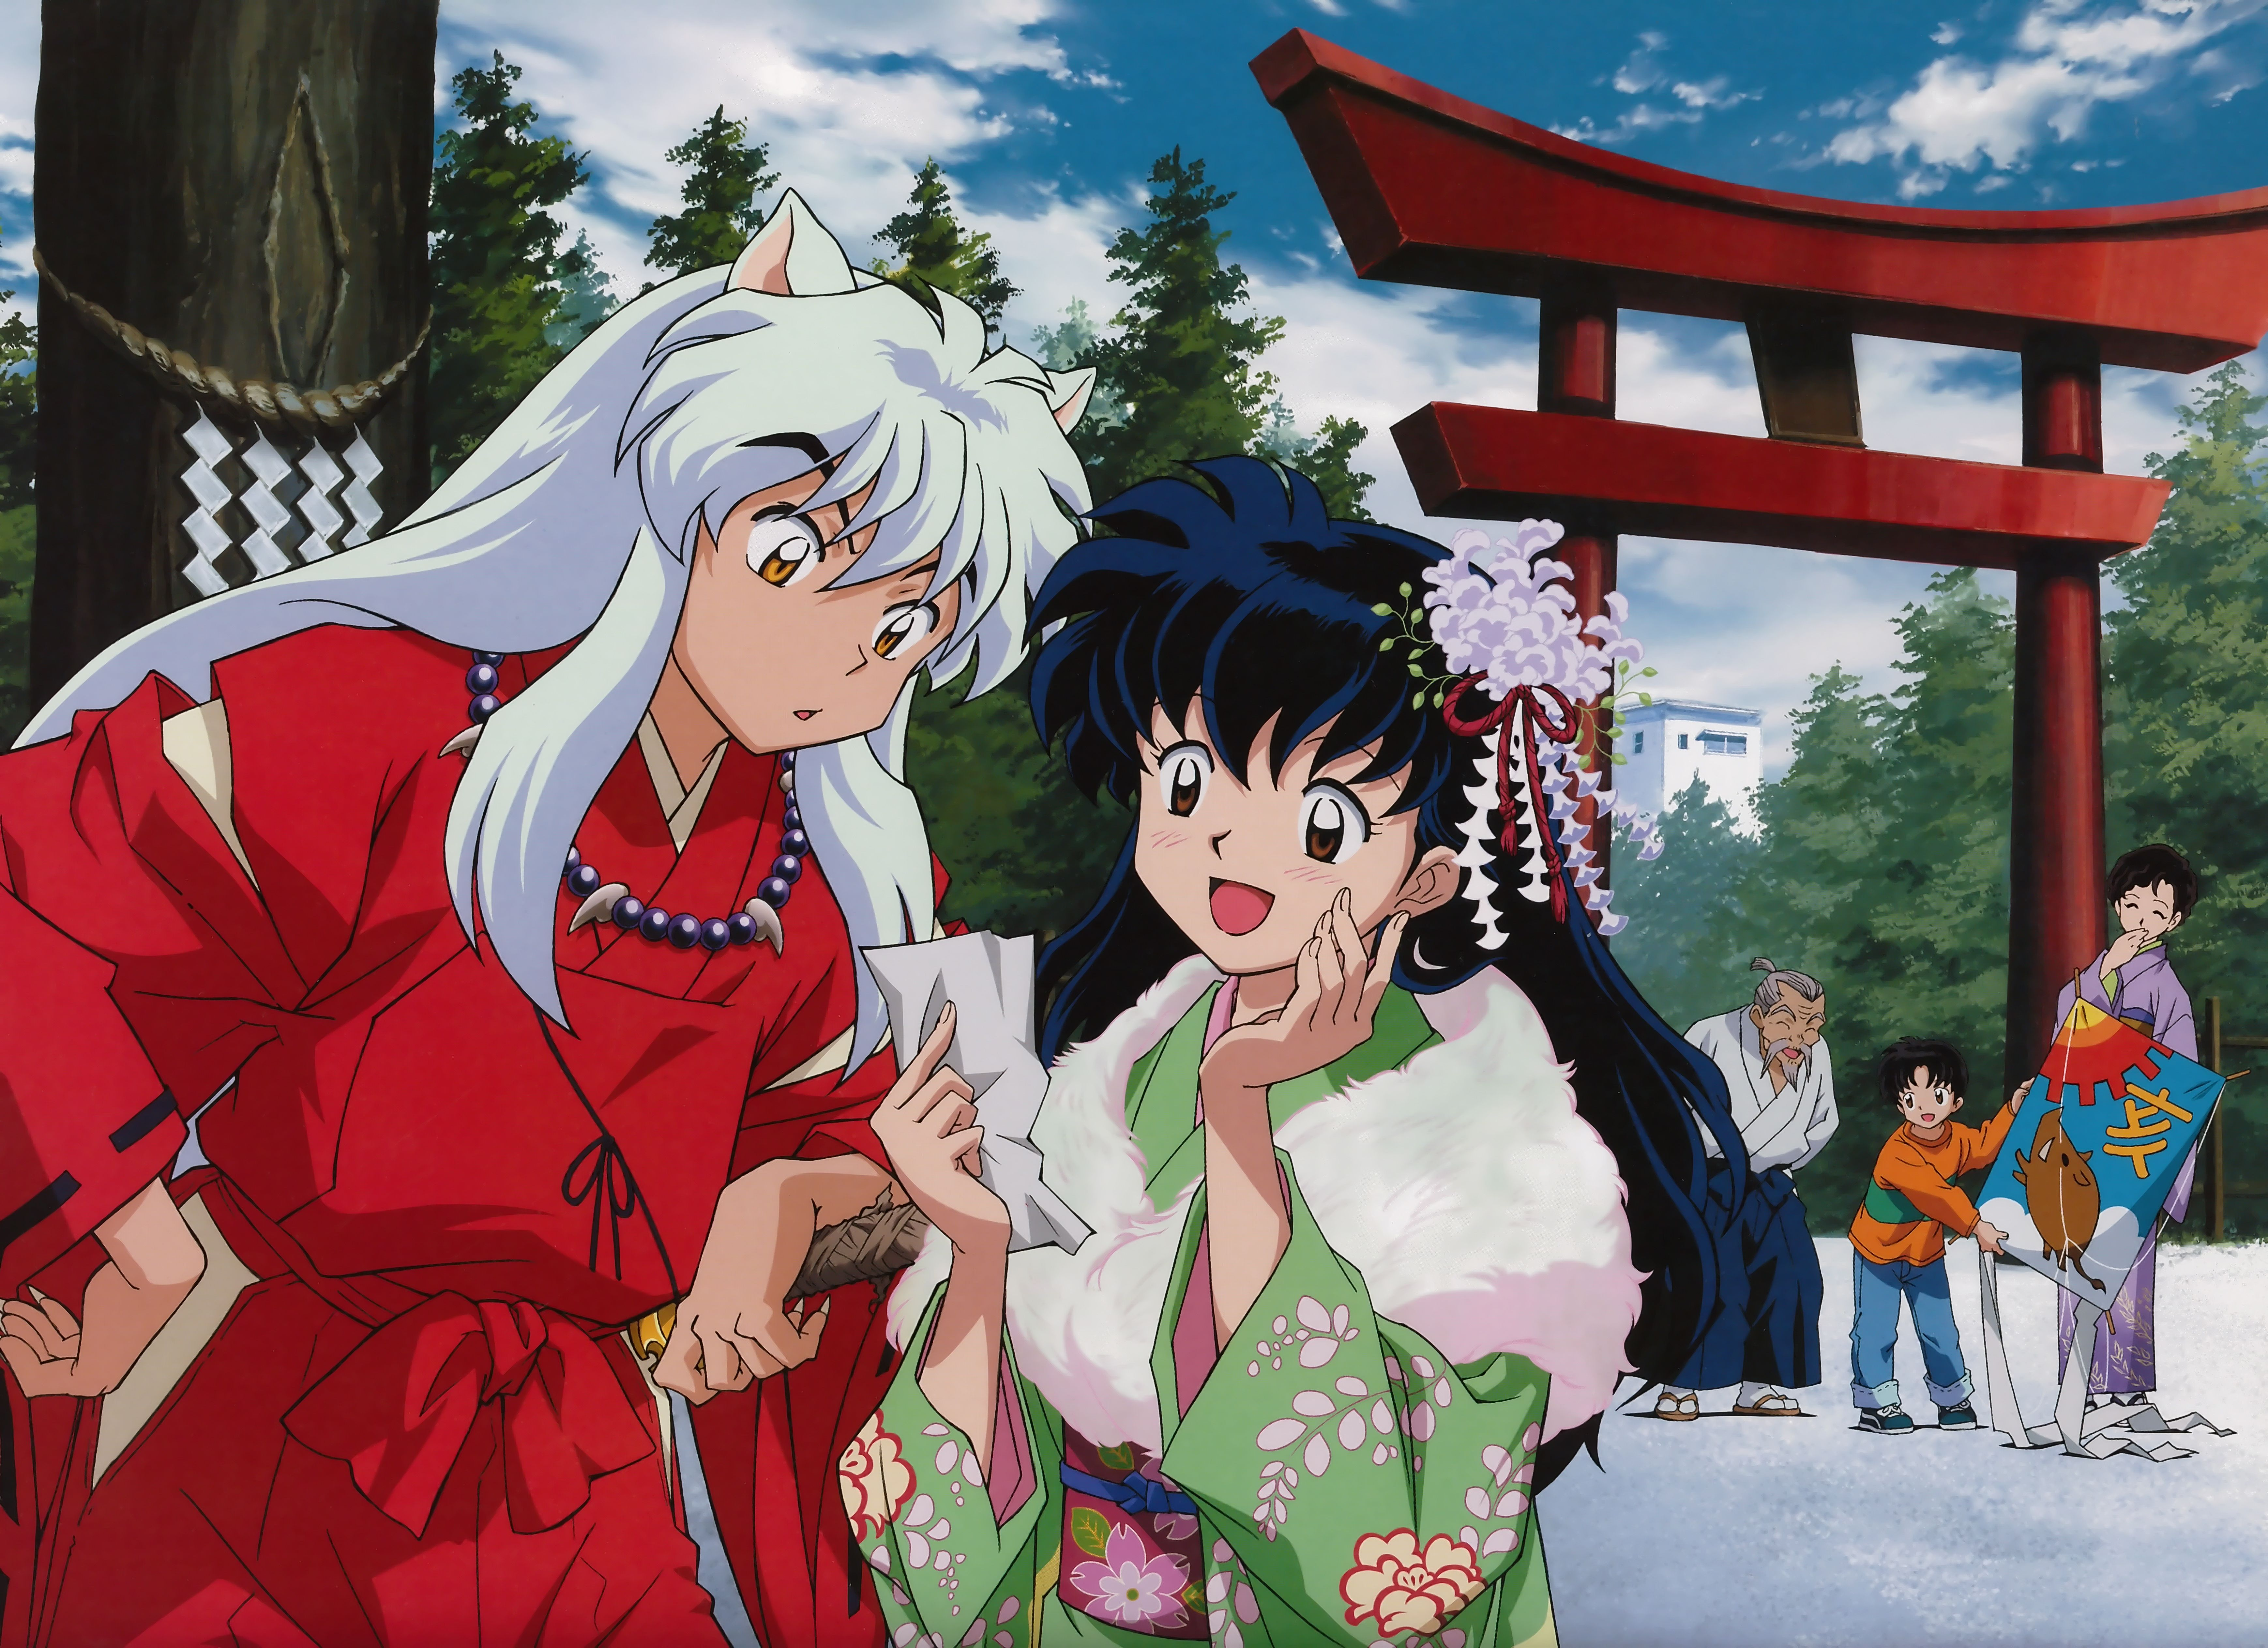 InuYasha and Kagome in modern Tokyo with Kagome's grandfather, brother Sota, and mother - InuYasha Official Artwork